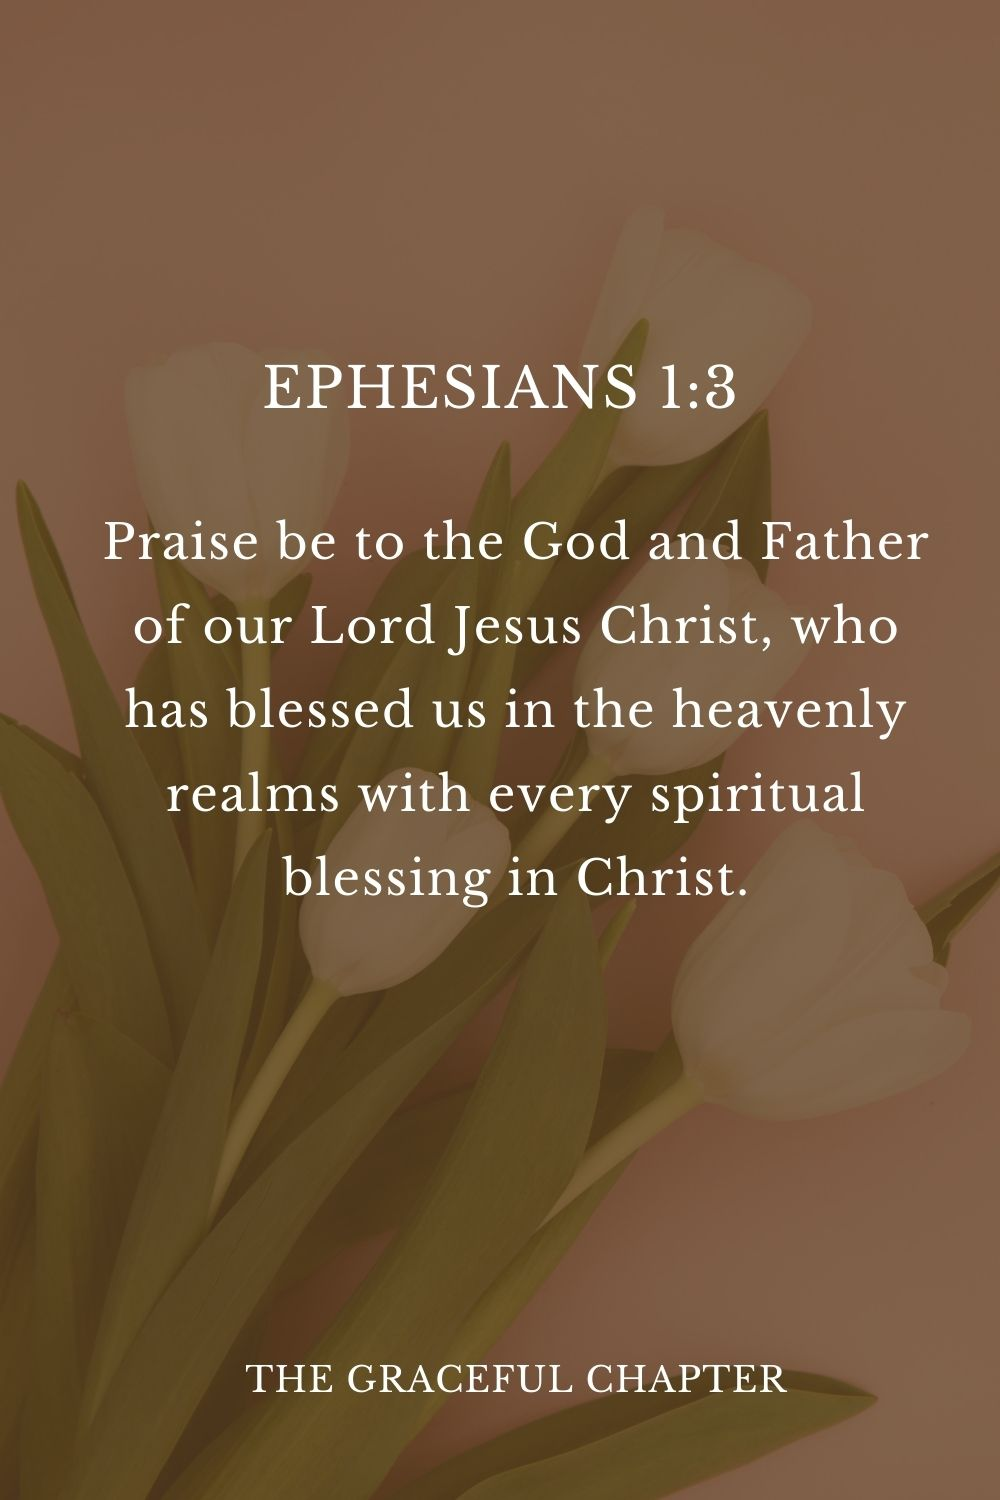 Praise be to the God and Father of our Lord Jesus Christ, who has blessed us in the heavenly realms with every spiritual blessing in Christ. Ephesians 1:3